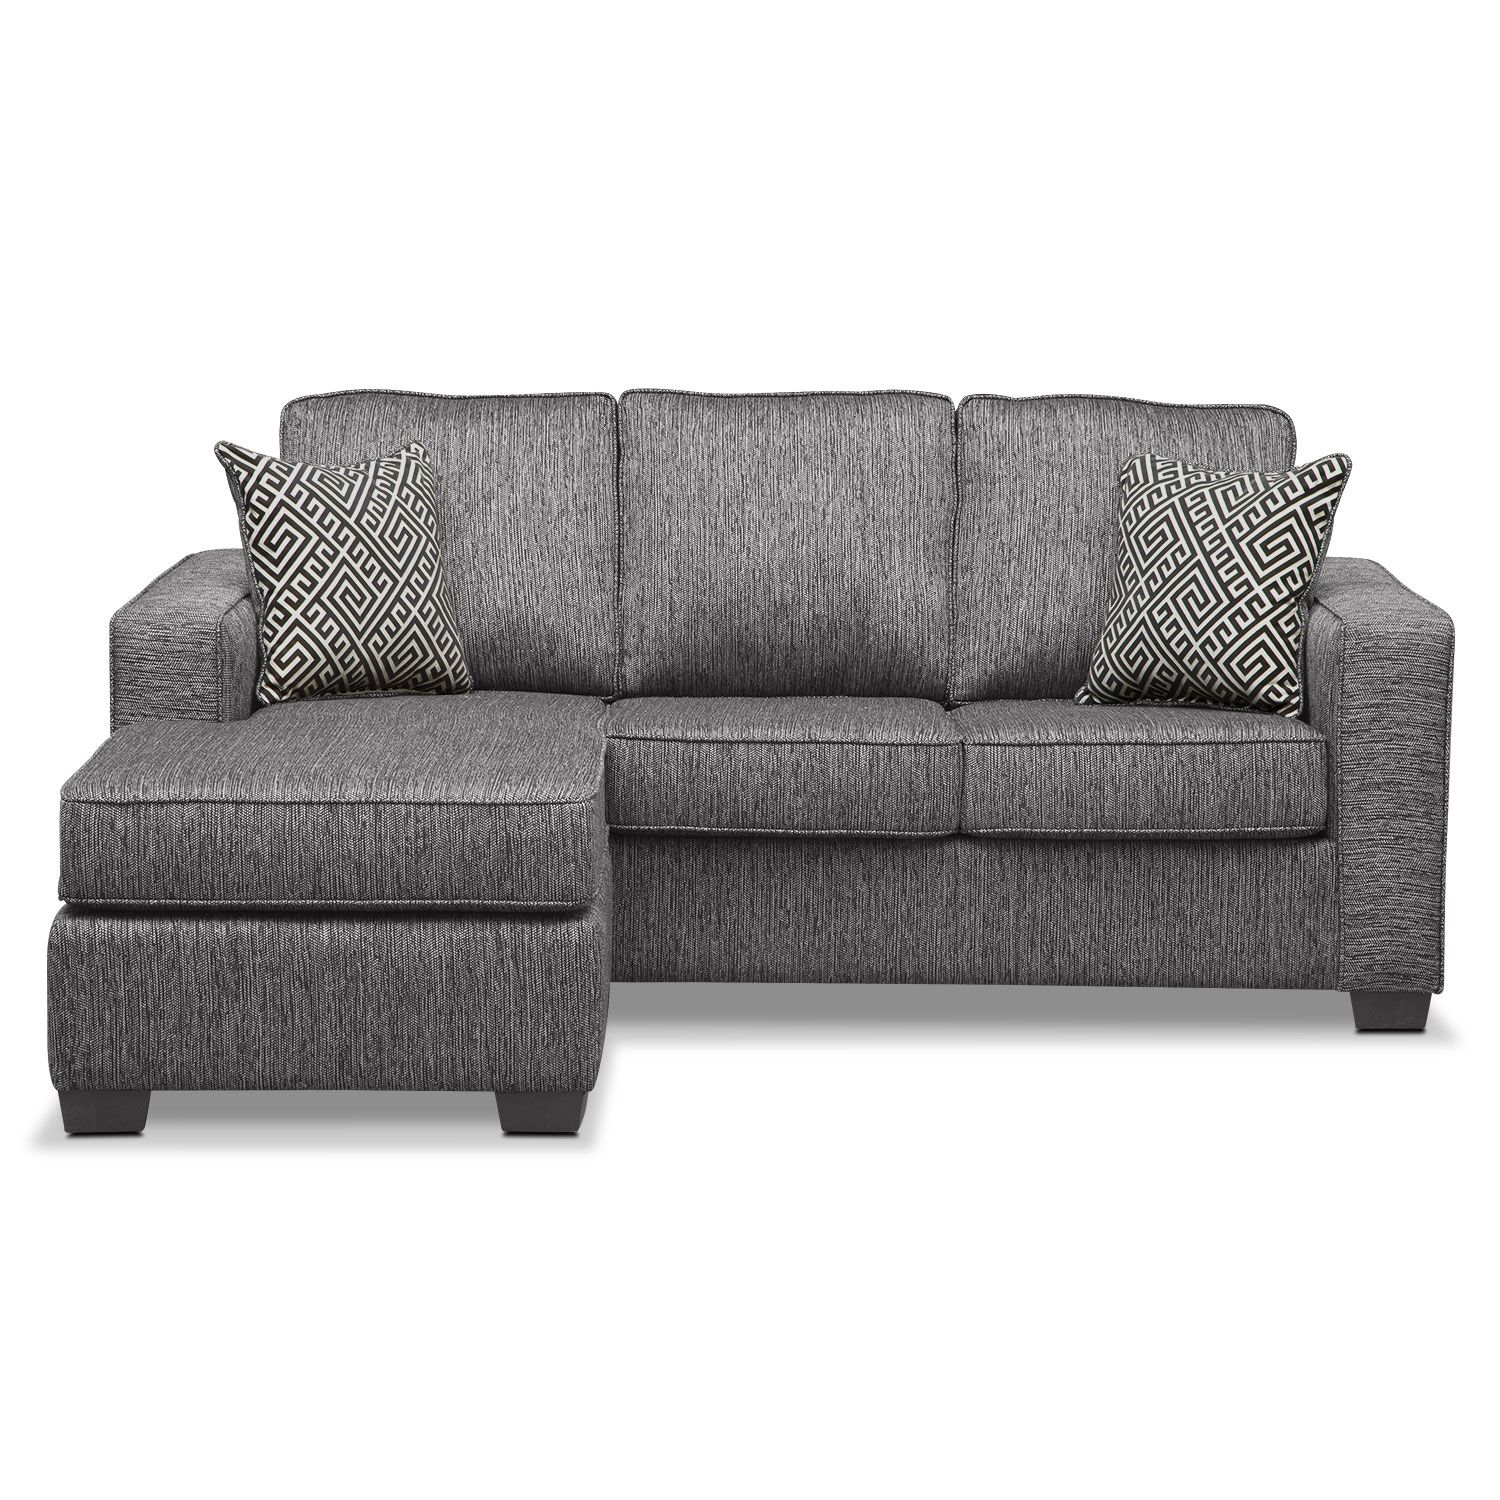 Value City Furniture Marco Chaise Sofa Build Your Own Set Sterling Charcoal Queen Memory Foam Sleeper W